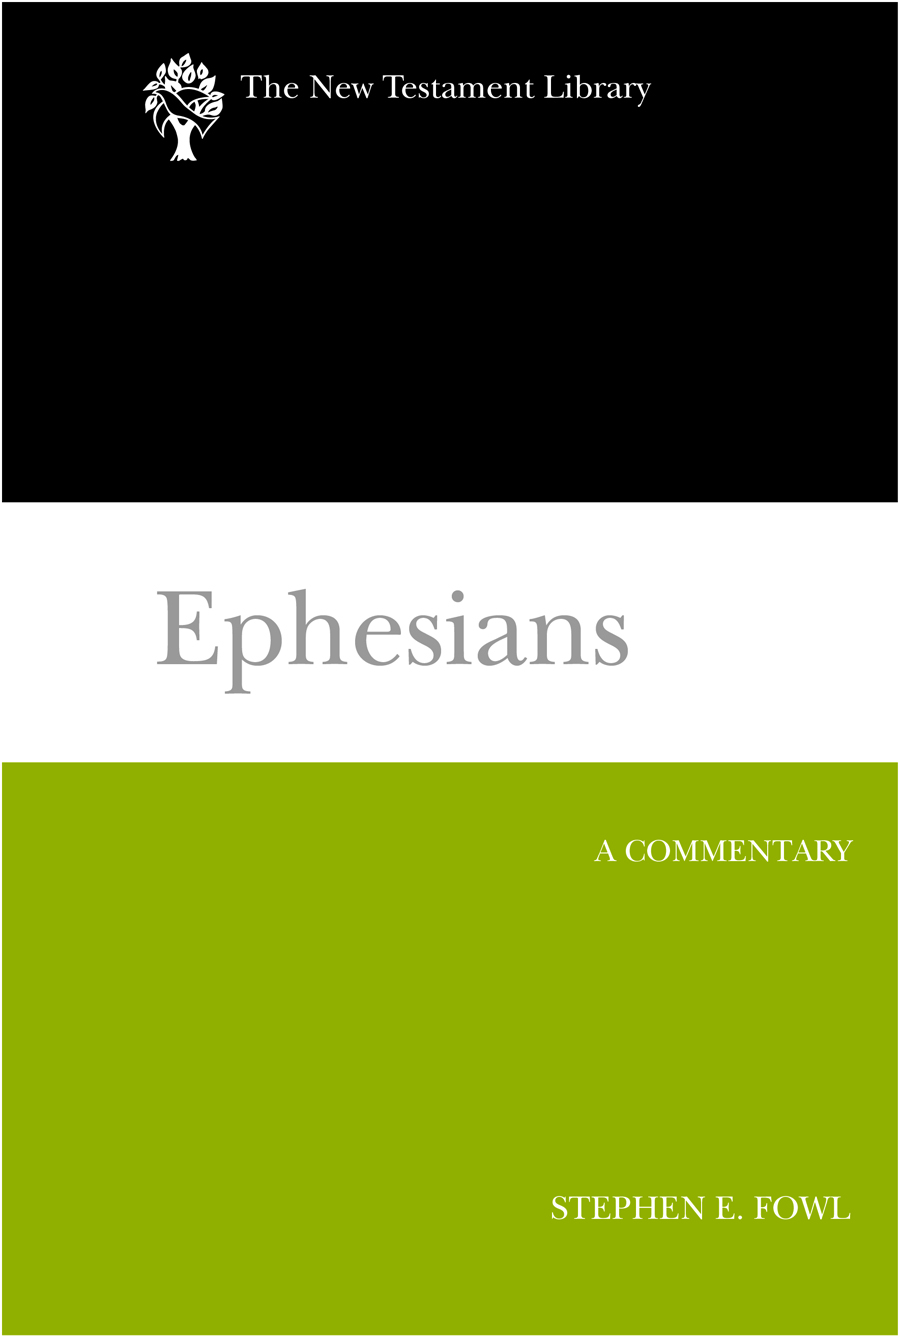 dating ephesians The letters of st paul to the colossians and ephesians the letters to the colossians & to the ephesians by felix just, sj, phd introduction.